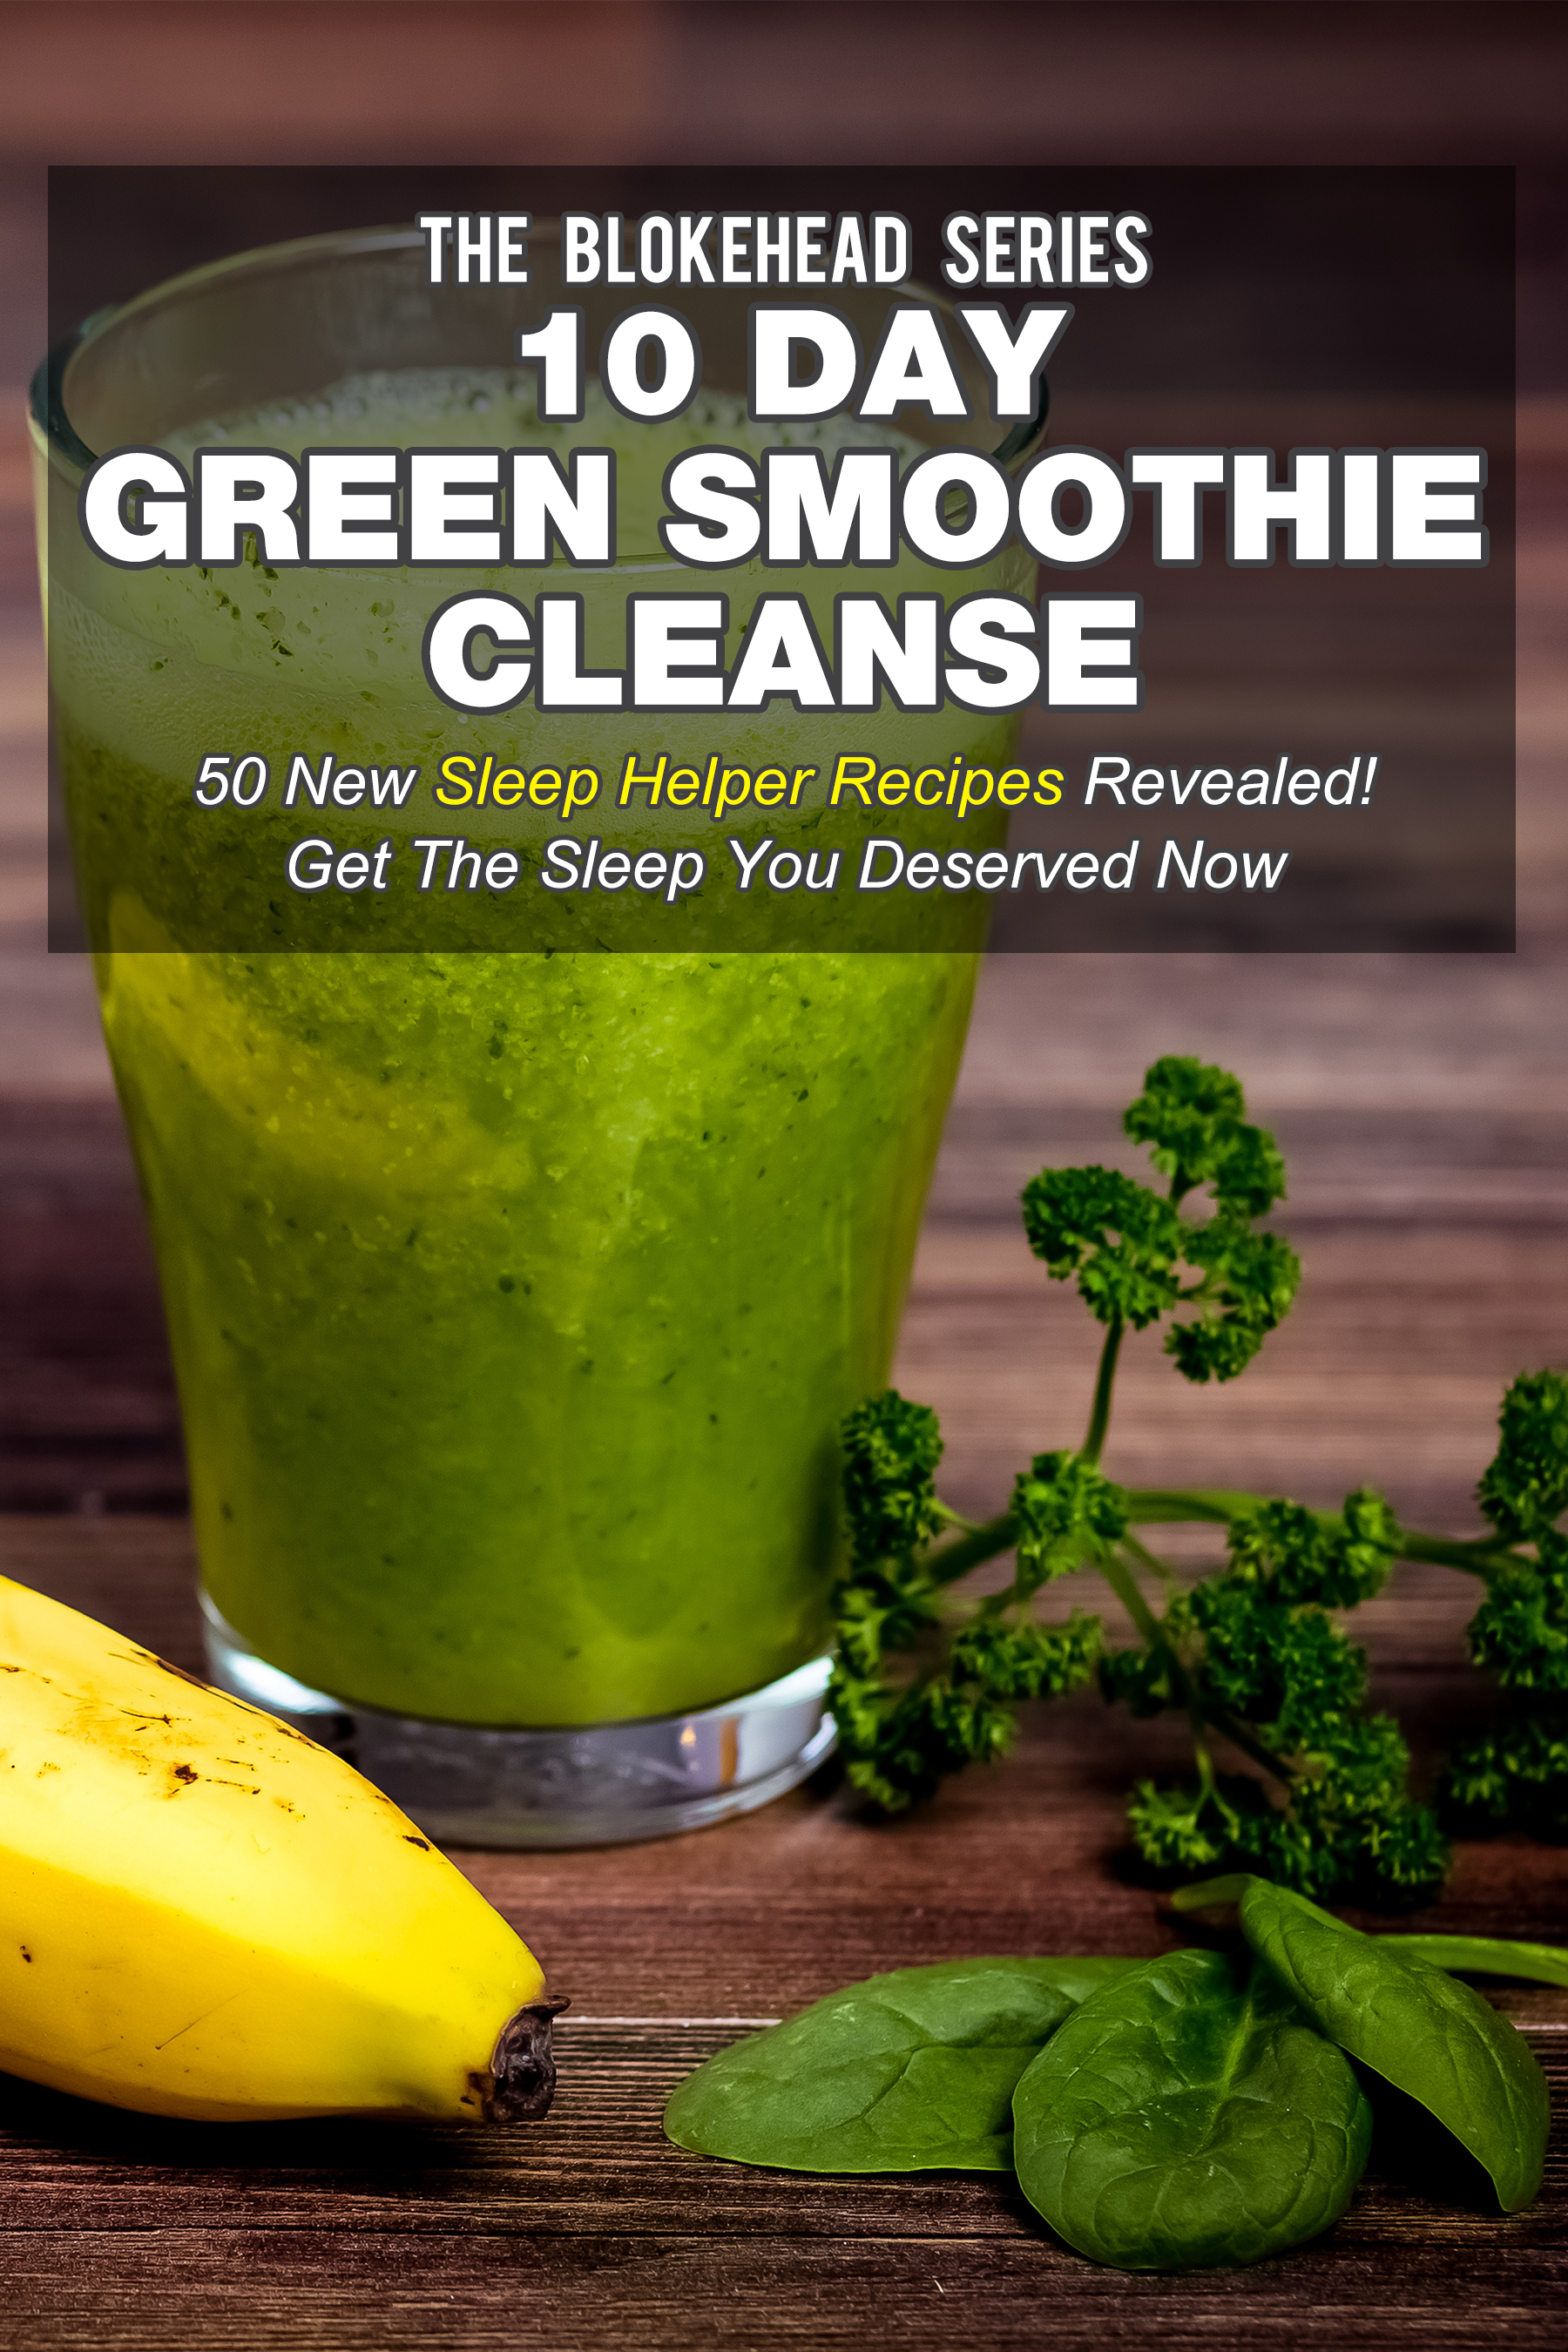 10 day green smoothie cleanse: 50 new sleep helper recipes revealed!